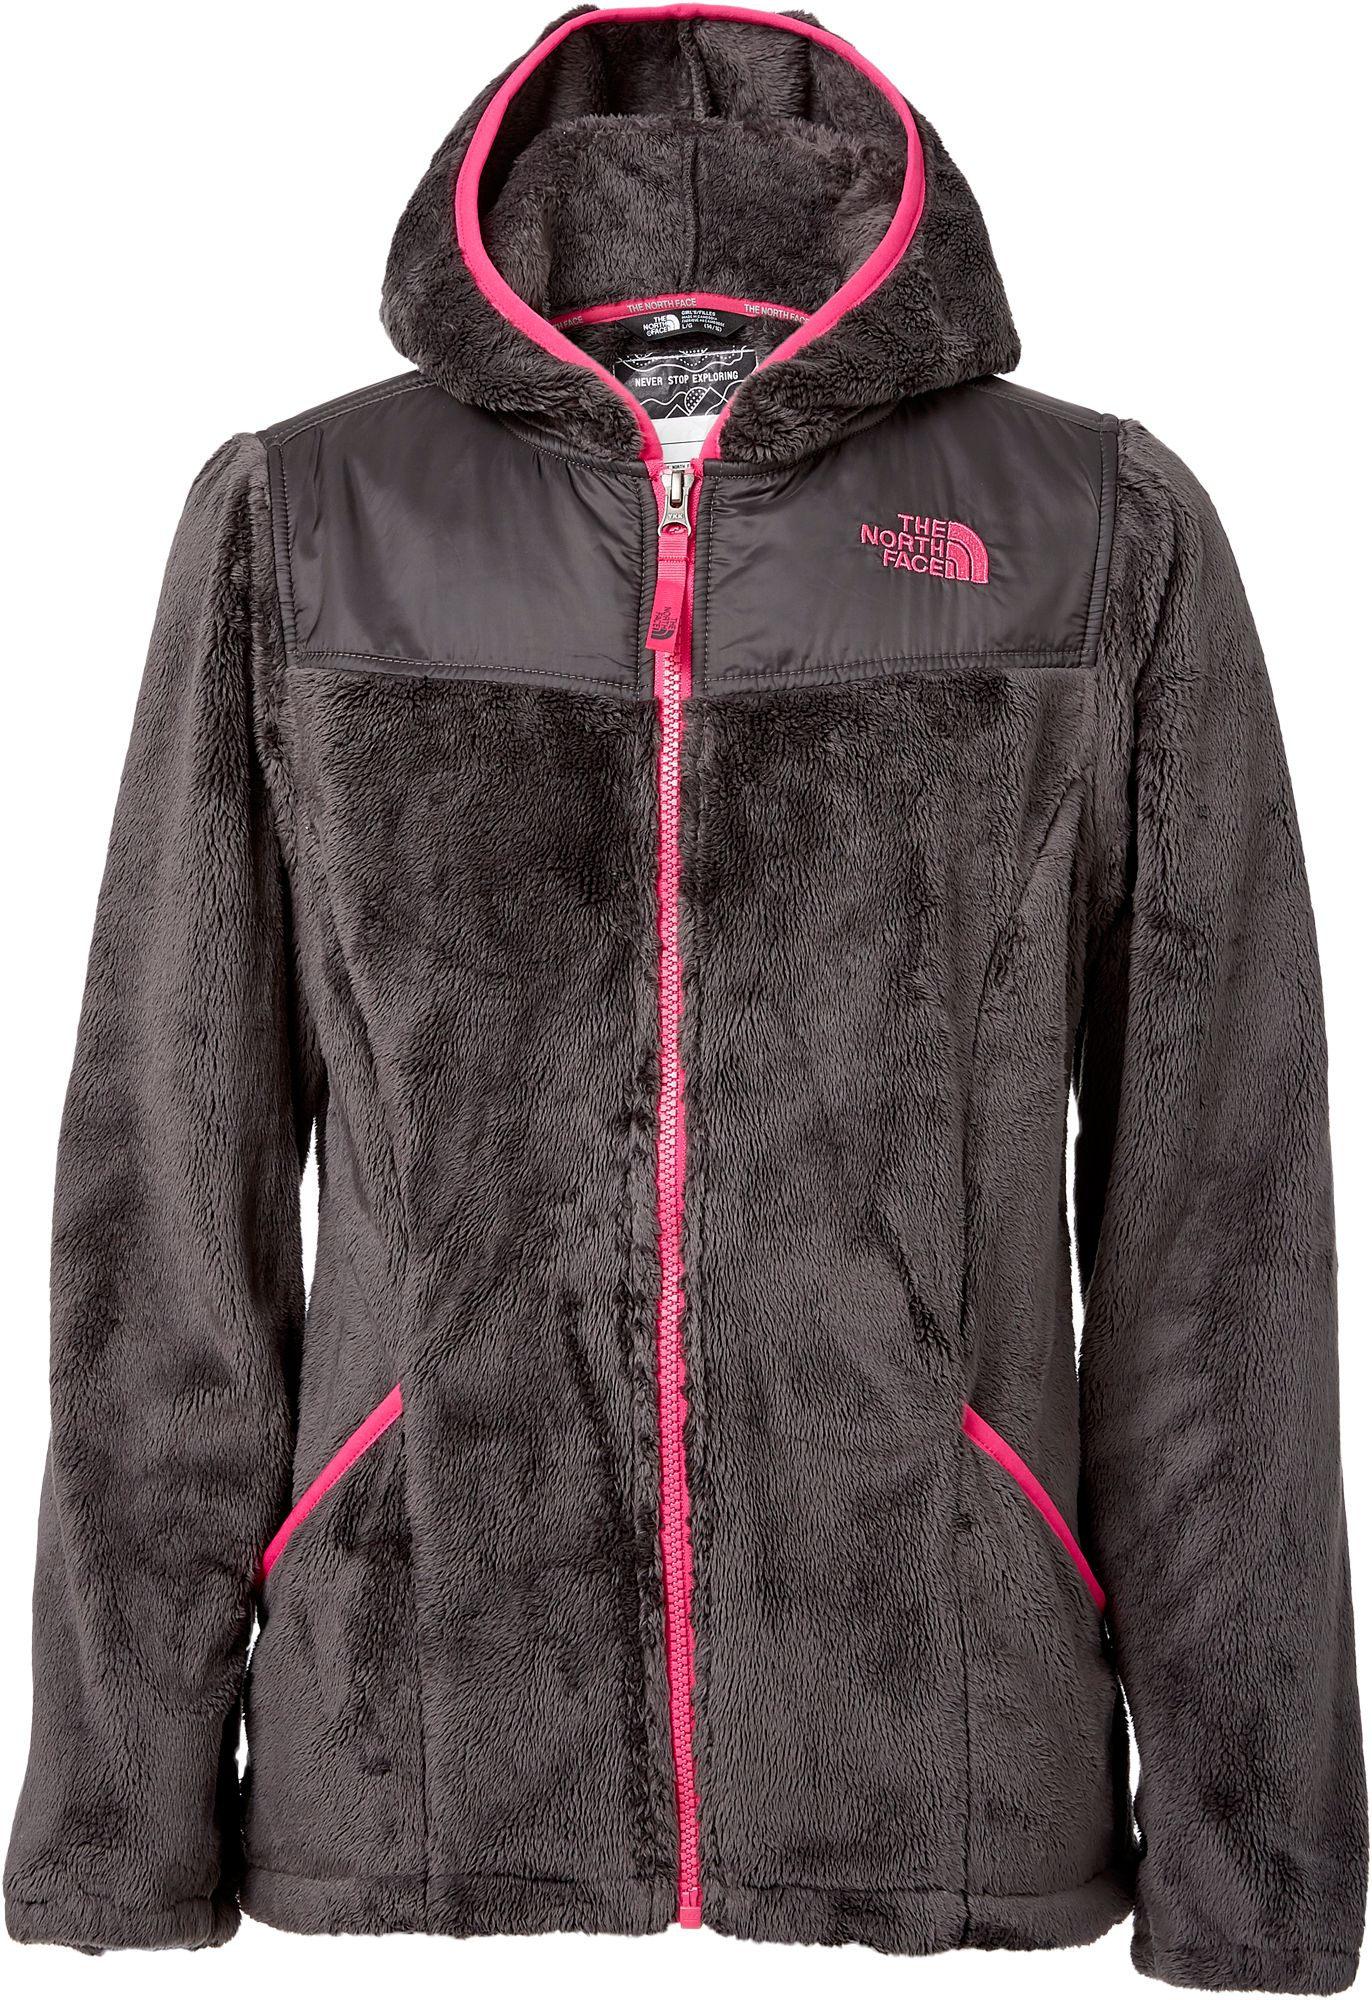 94216ab61d ... The North Face Girls Fleece Oso Hoodie DICKS Sporting Goods Inlux  Insulated Jacket - Mens ...